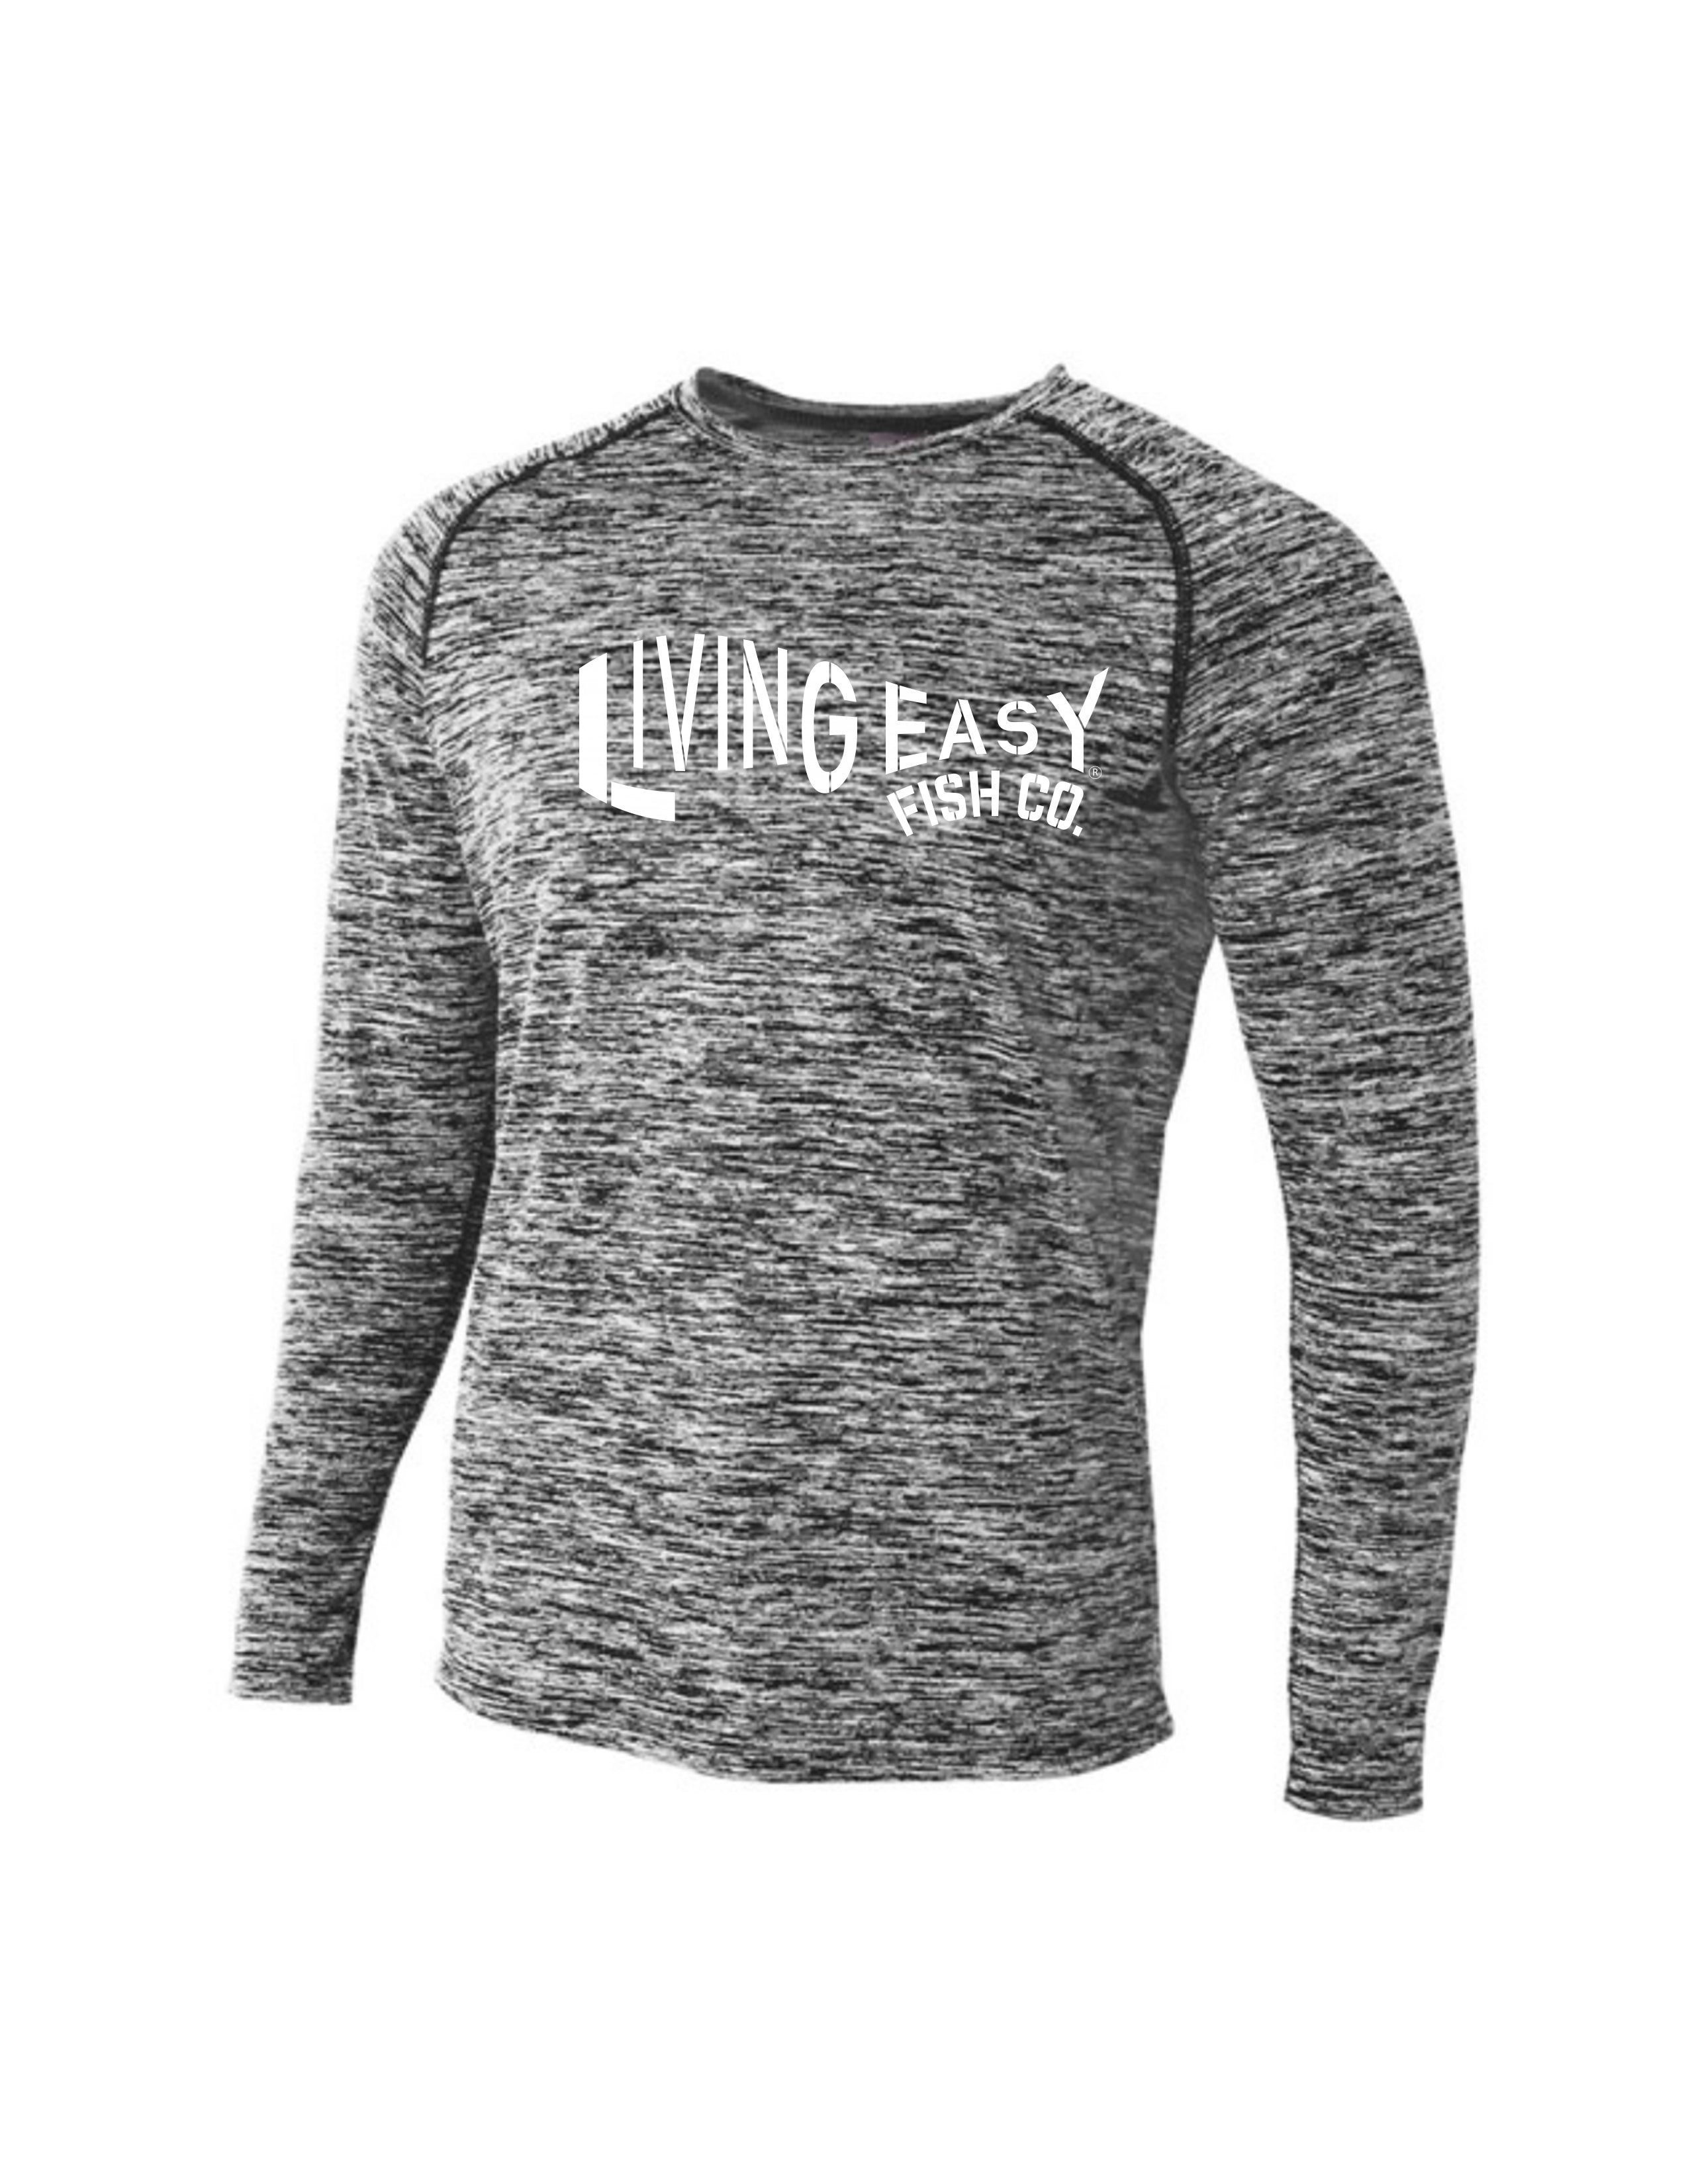 Living Easy® Fish Co. Performance Long Sleeve